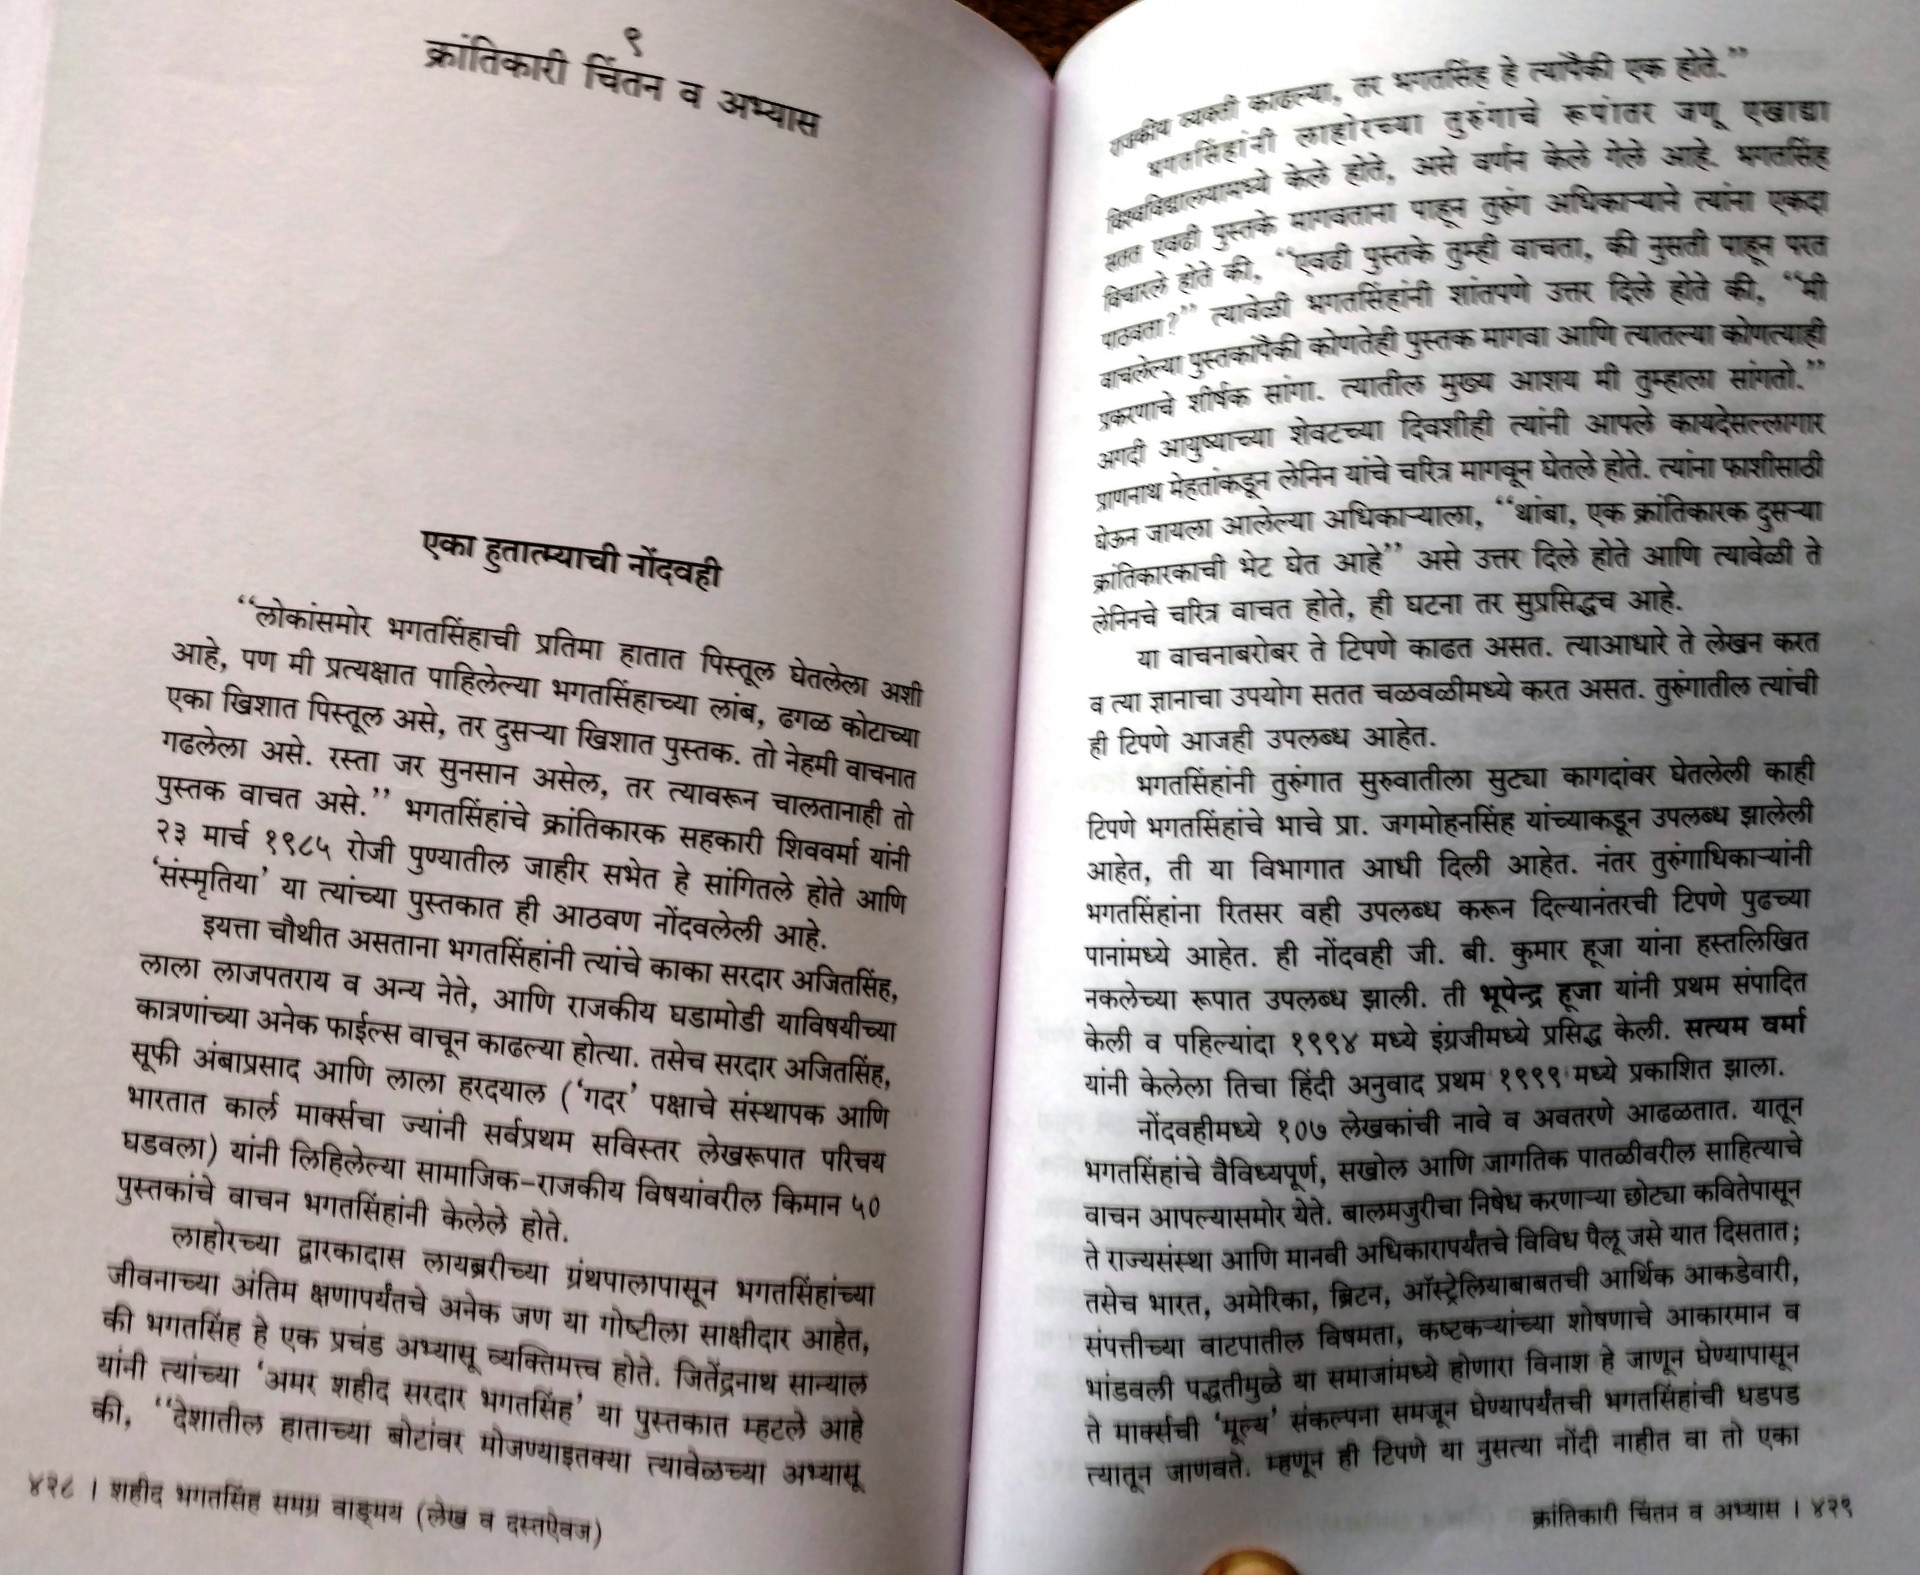 002 Different Editions Of Bhagat Singh Jail Note Book Marathi Essay Example On Unique In Short 100 Words 1920